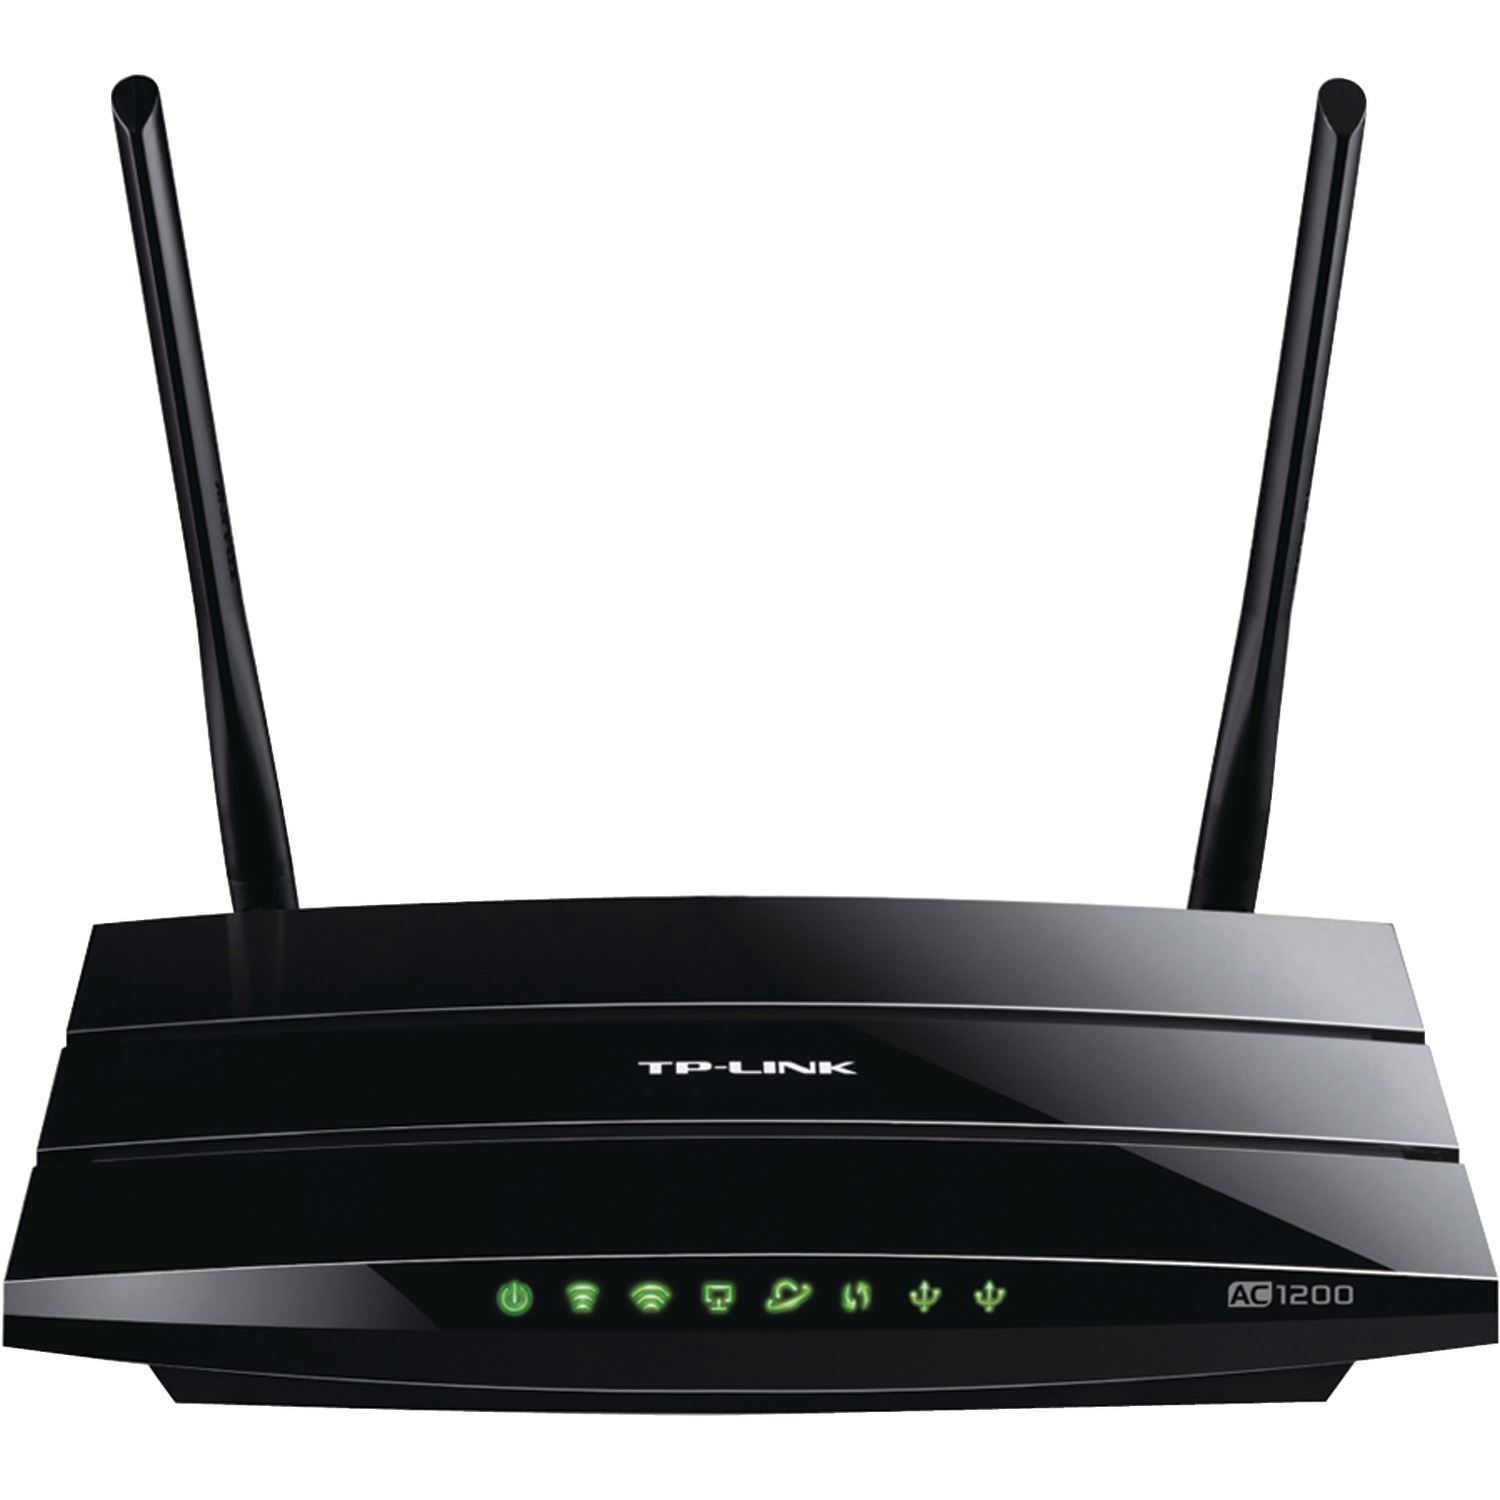 Tp-Link ARCHER C5 ARCHER C5 AC1200 Wireless Dual-Band Gigabit Router